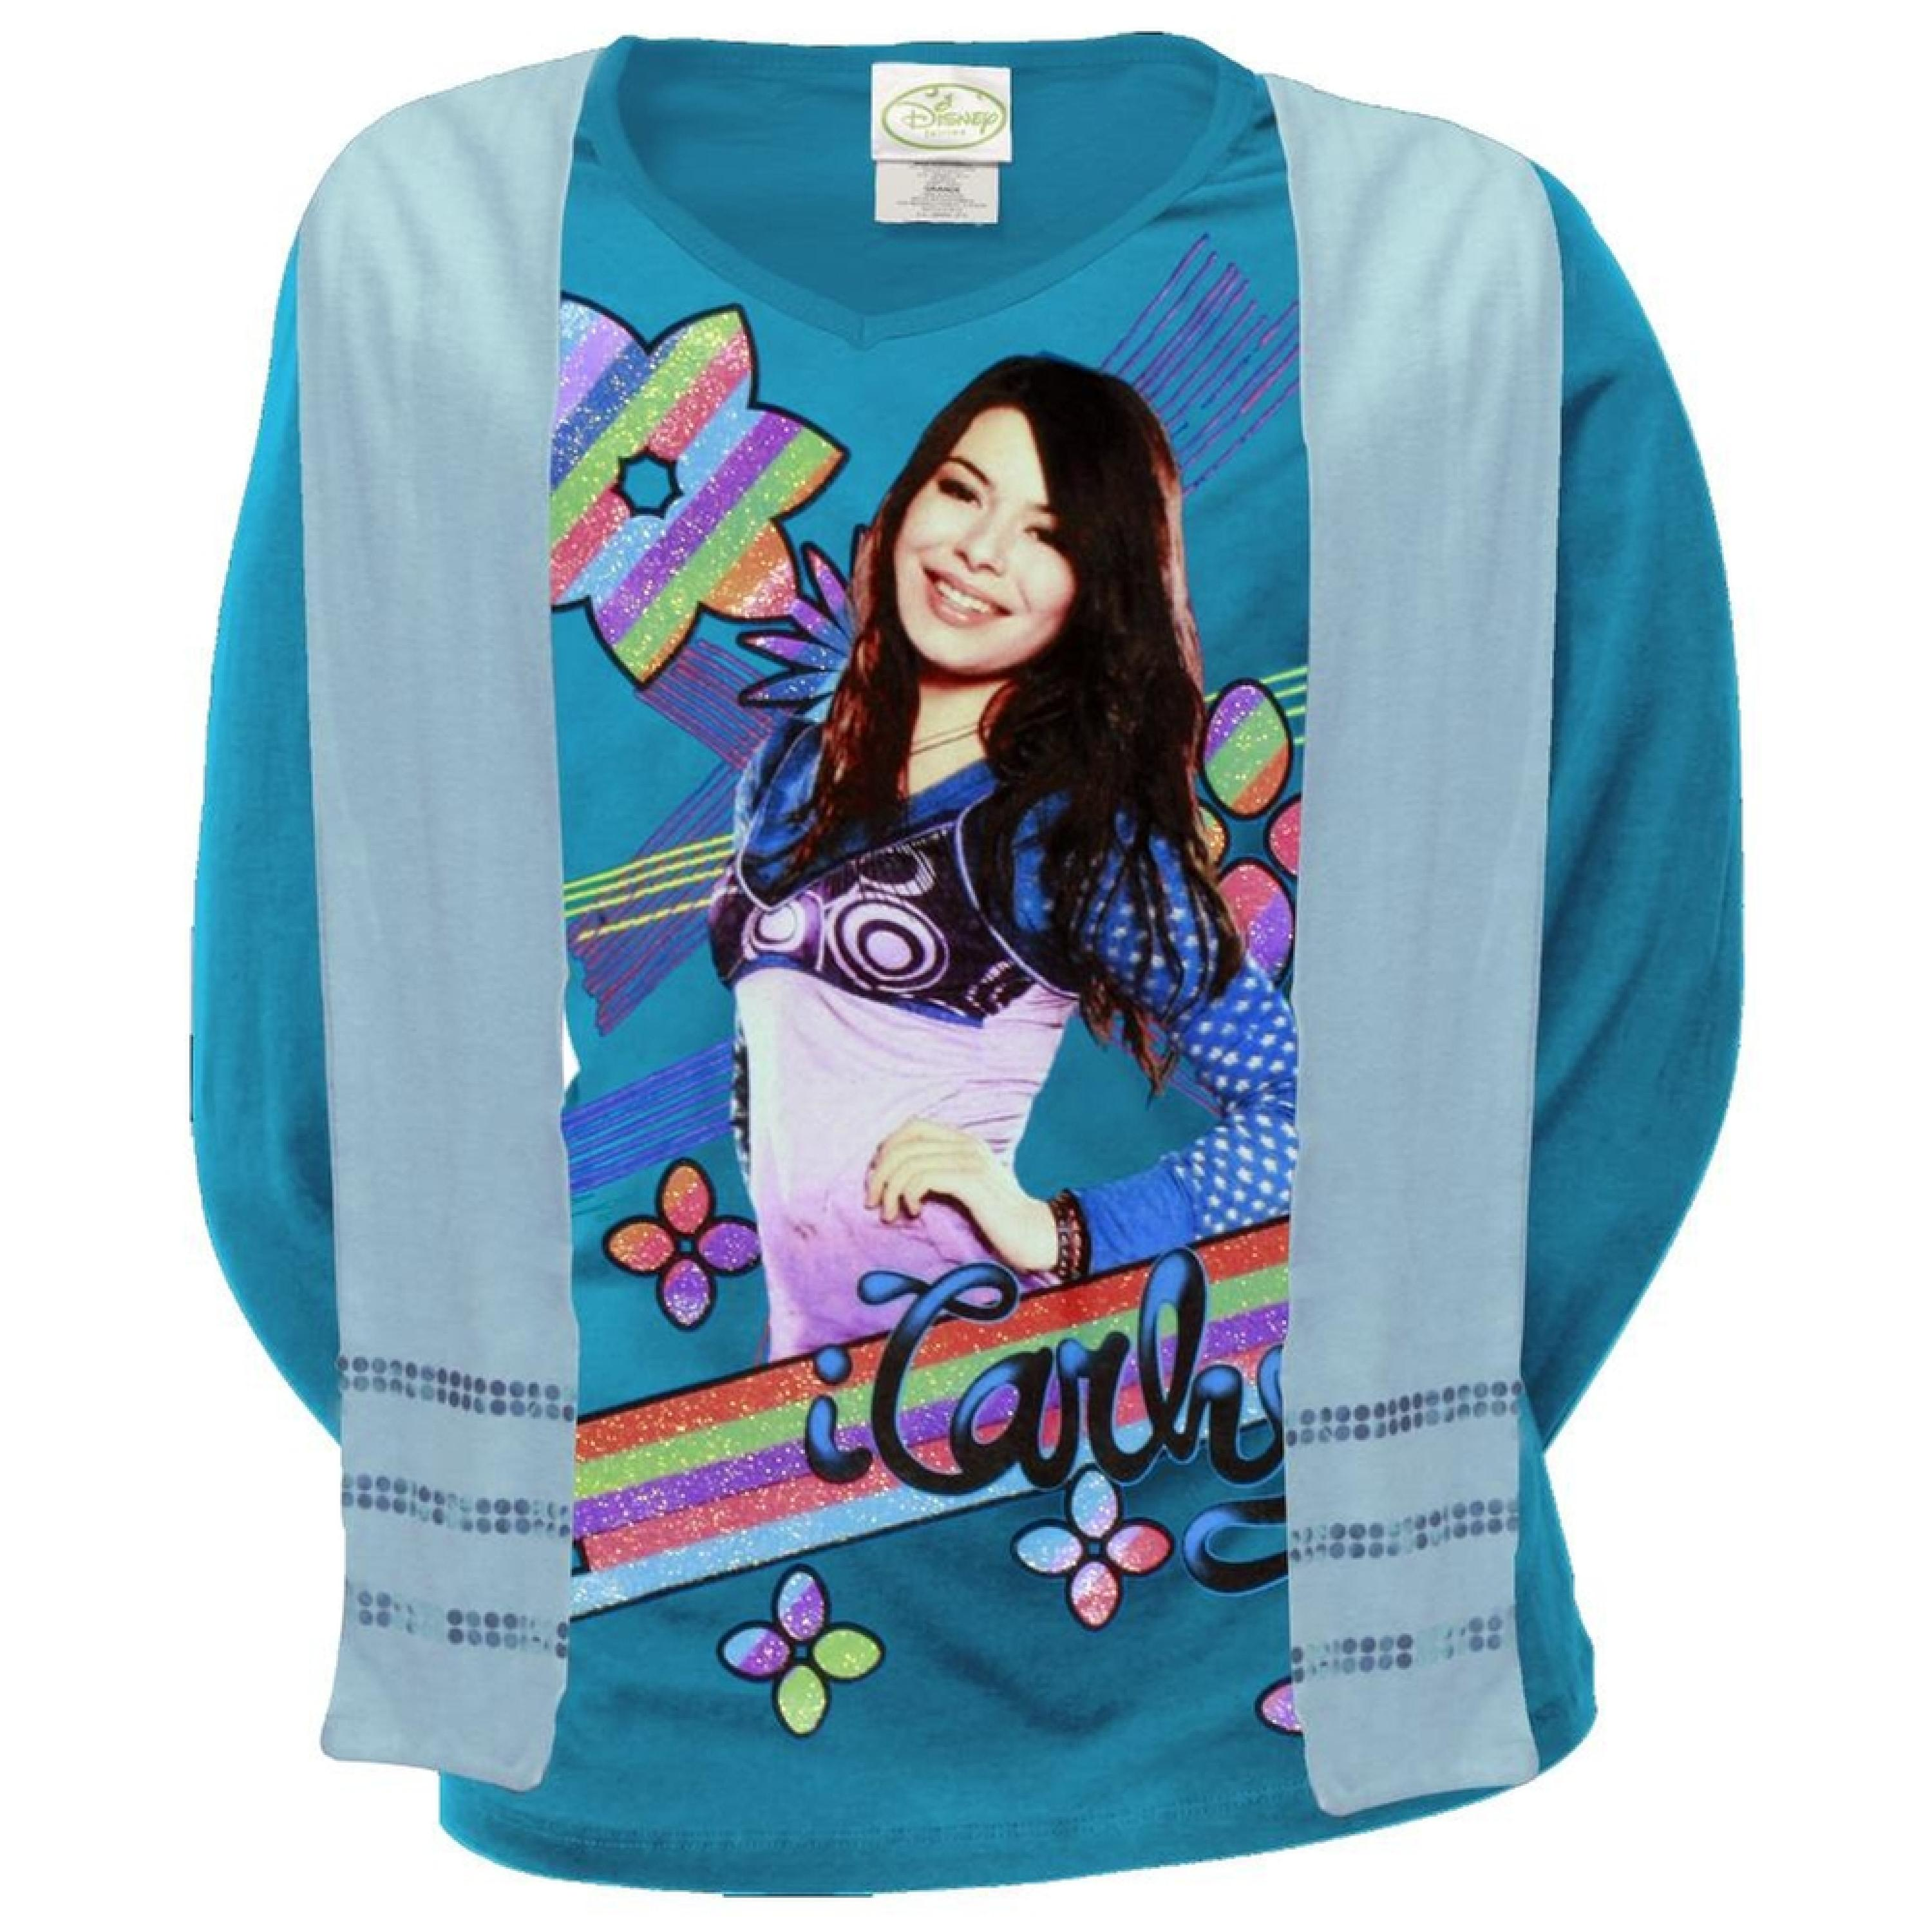 iCarly - Rainbow Stripe Girls Youth Long Sleeve T-Shirt w/ Scarf